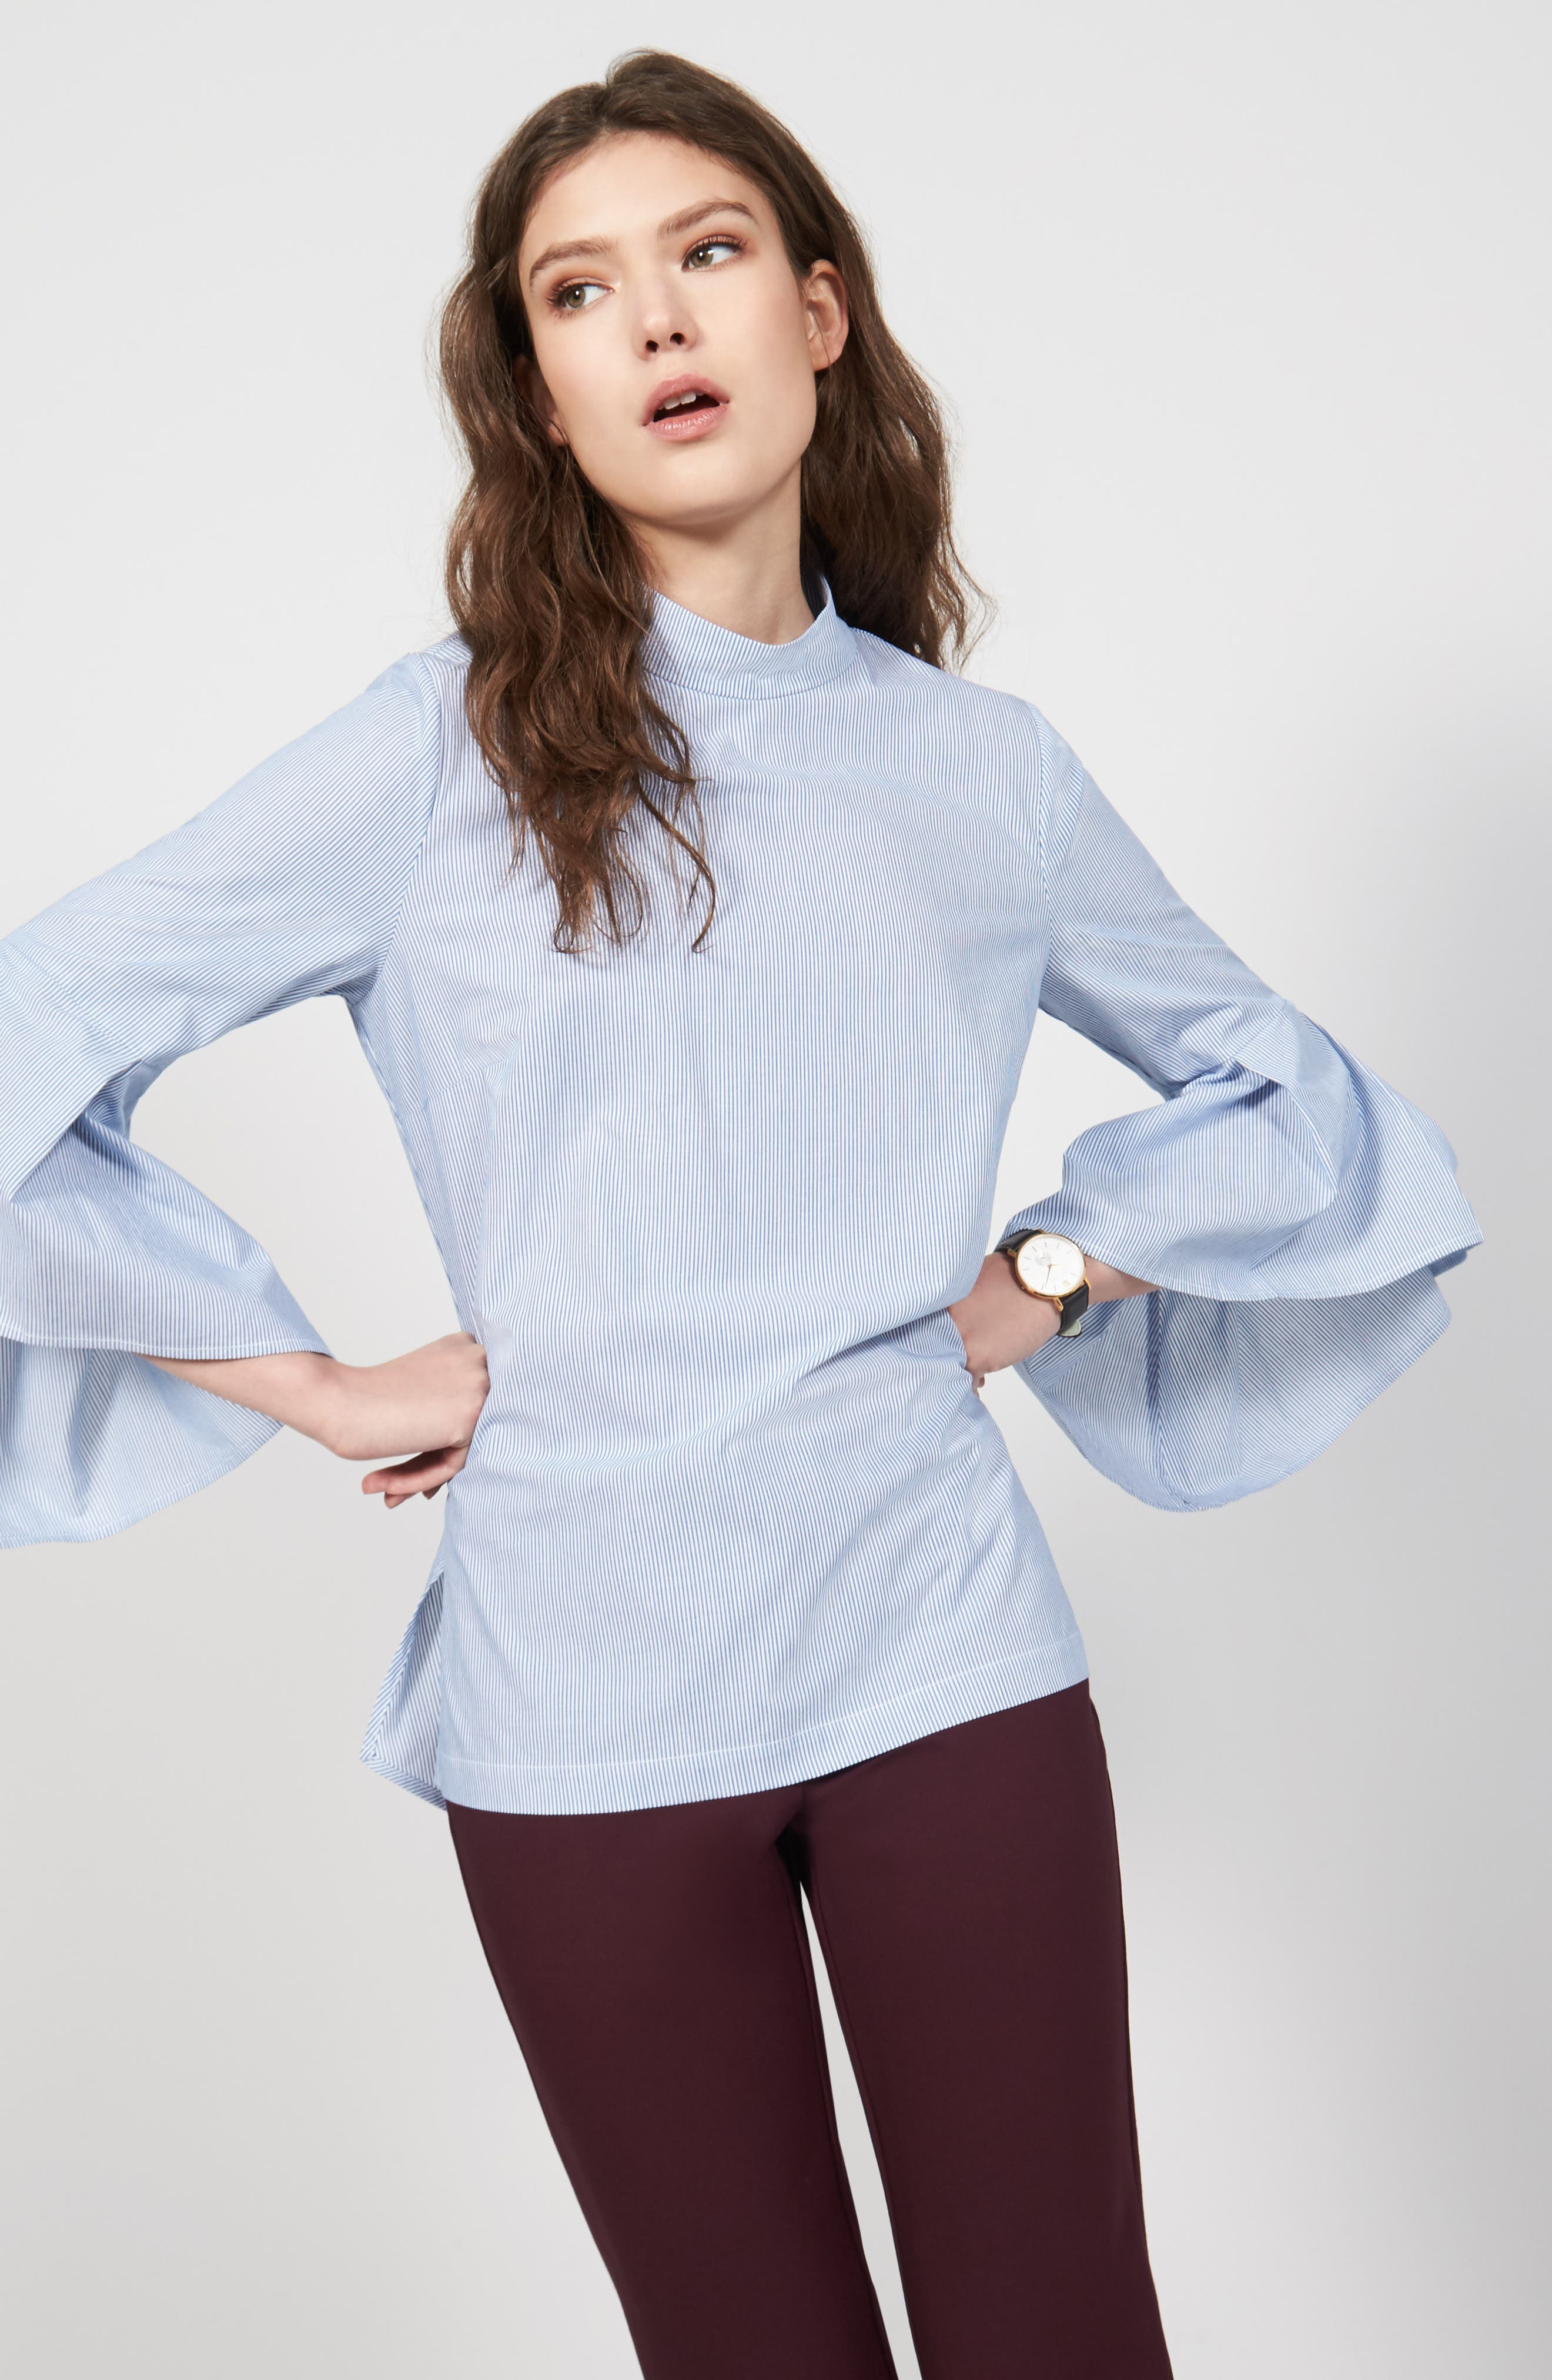 Pleione Shirt & Halogen® Ankle Pants Outfit with Accessories